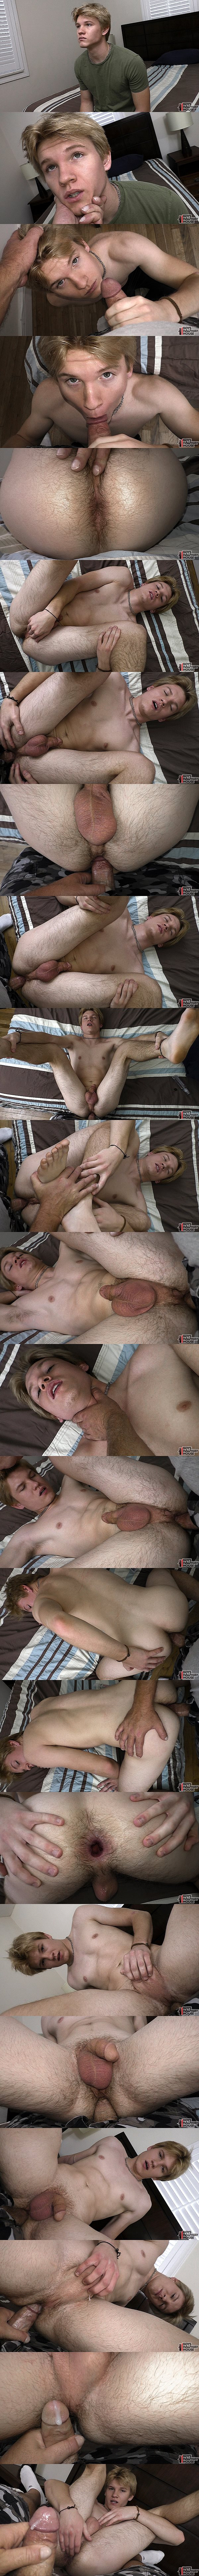 Boyshalfwayhouse - The house manager barebacks blond straight dude Tyler Blue's tight bubble butt in a POV scene before he creampies Tyler in Paying His Dues 02